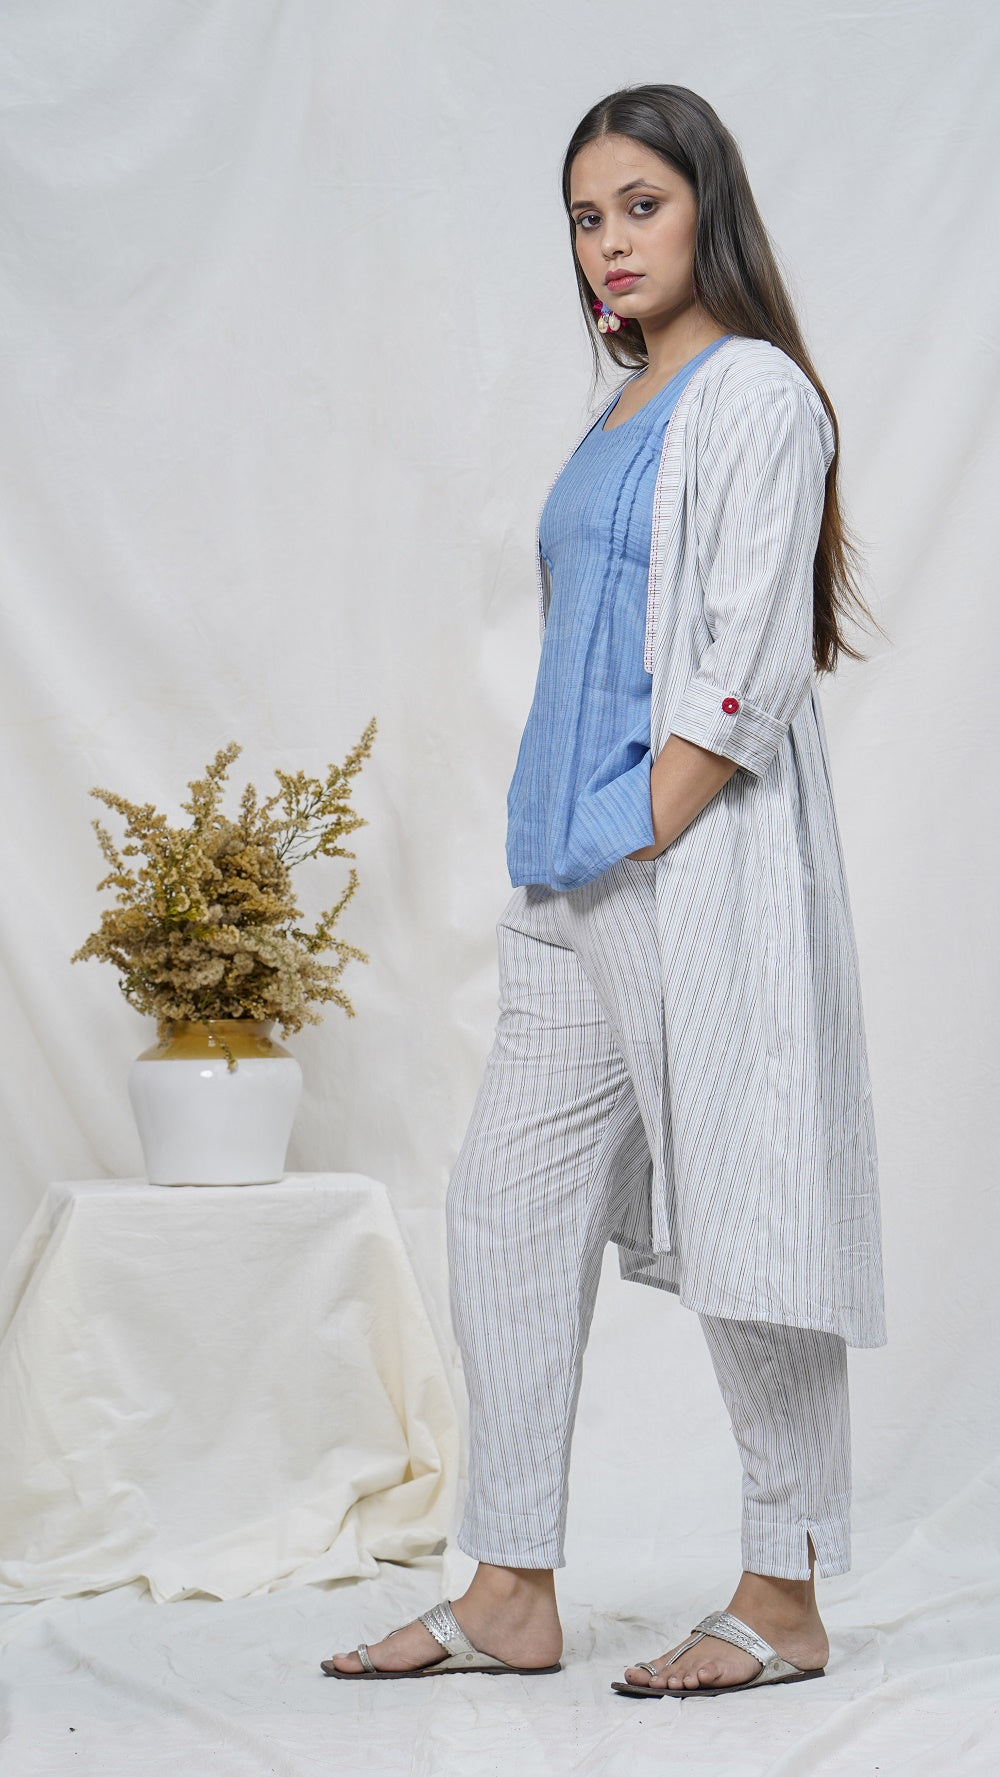 Cotton shrug coordinate available online at bebaakstudio.com